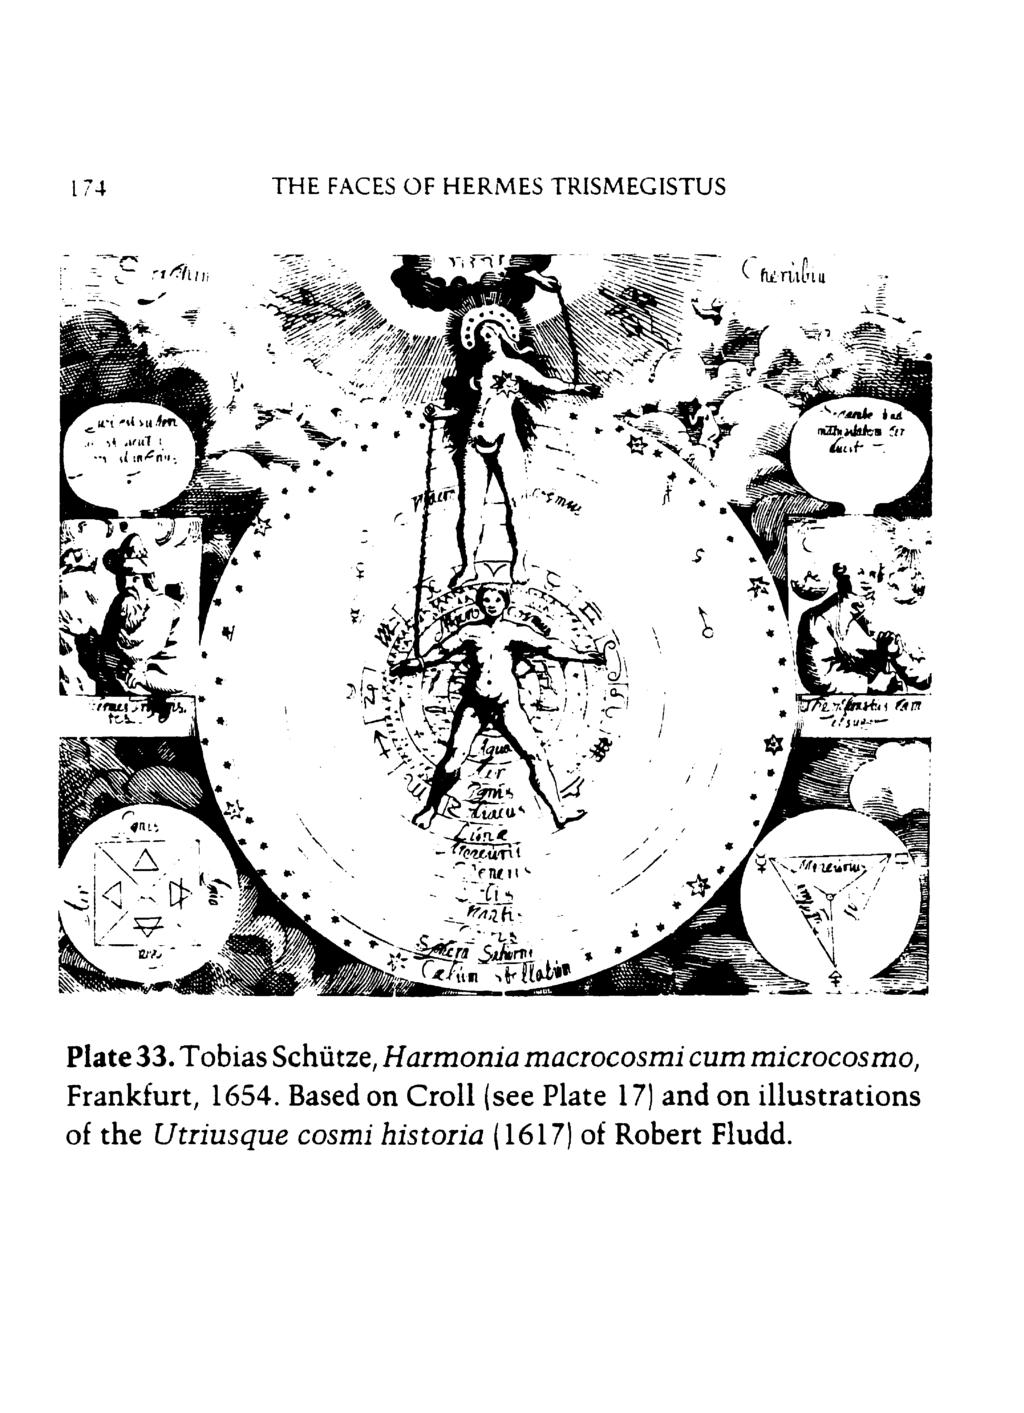 THE FACES OF HERMES TRISMEGISTUS Plate 33. Tobias Schütze, Harmonio macrocosmi cum microcosmo, Frankfurt, 16%.